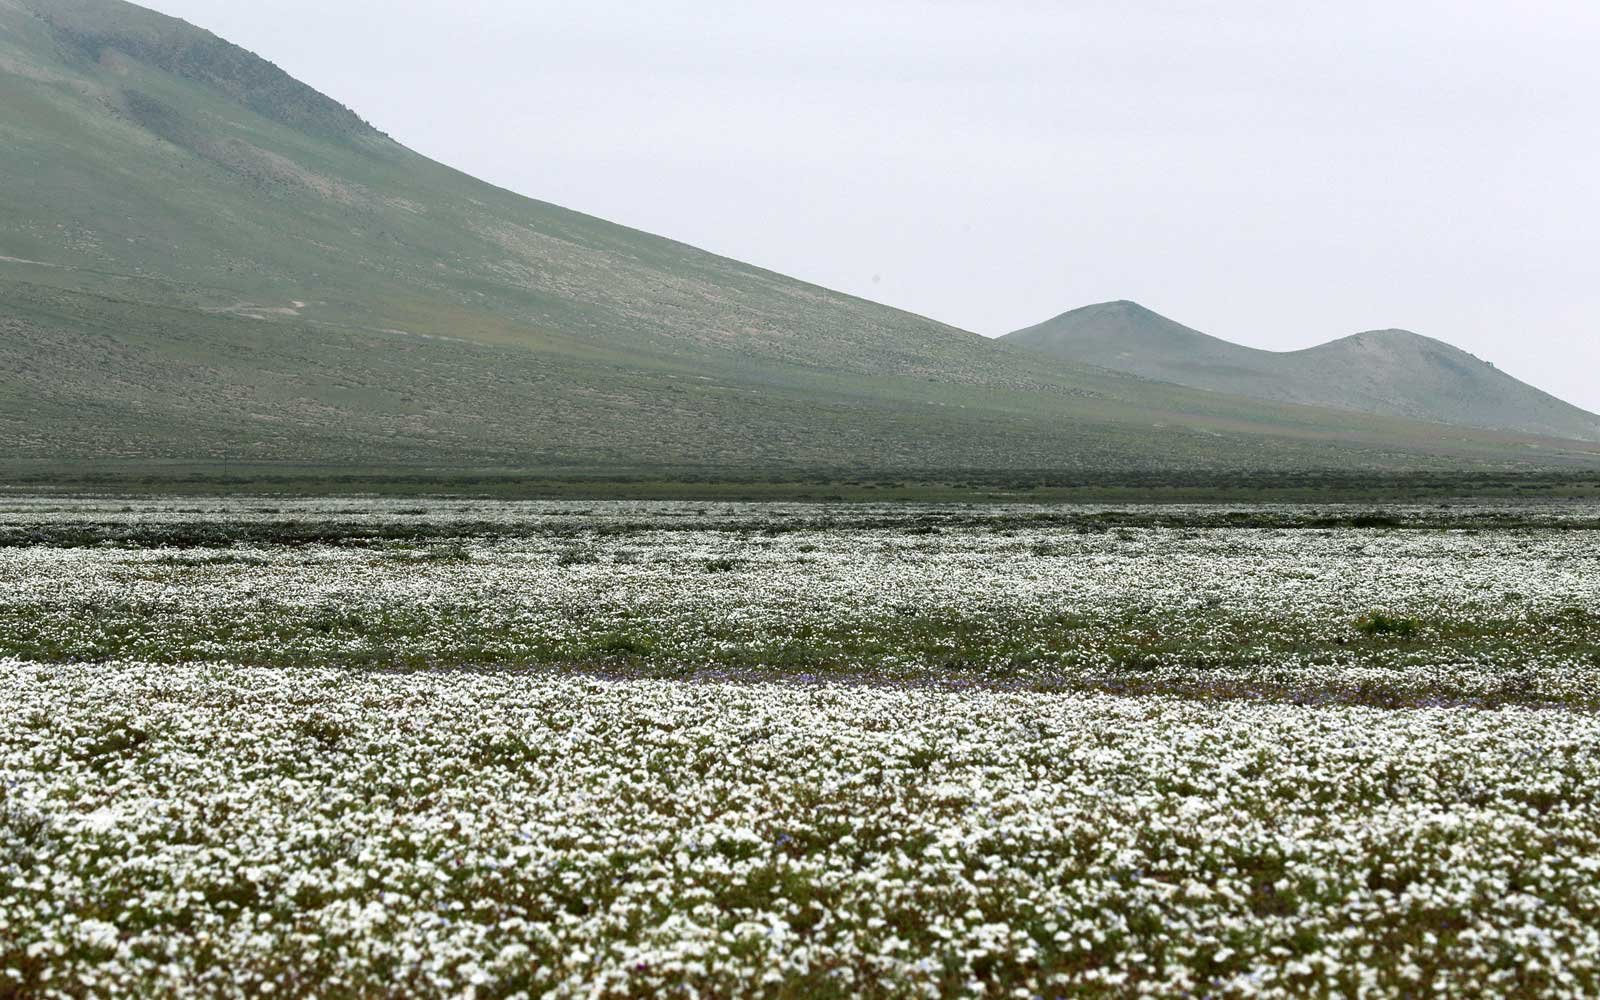 White Flowers Bloom in the Atacama Desert after Heavy Rainfall